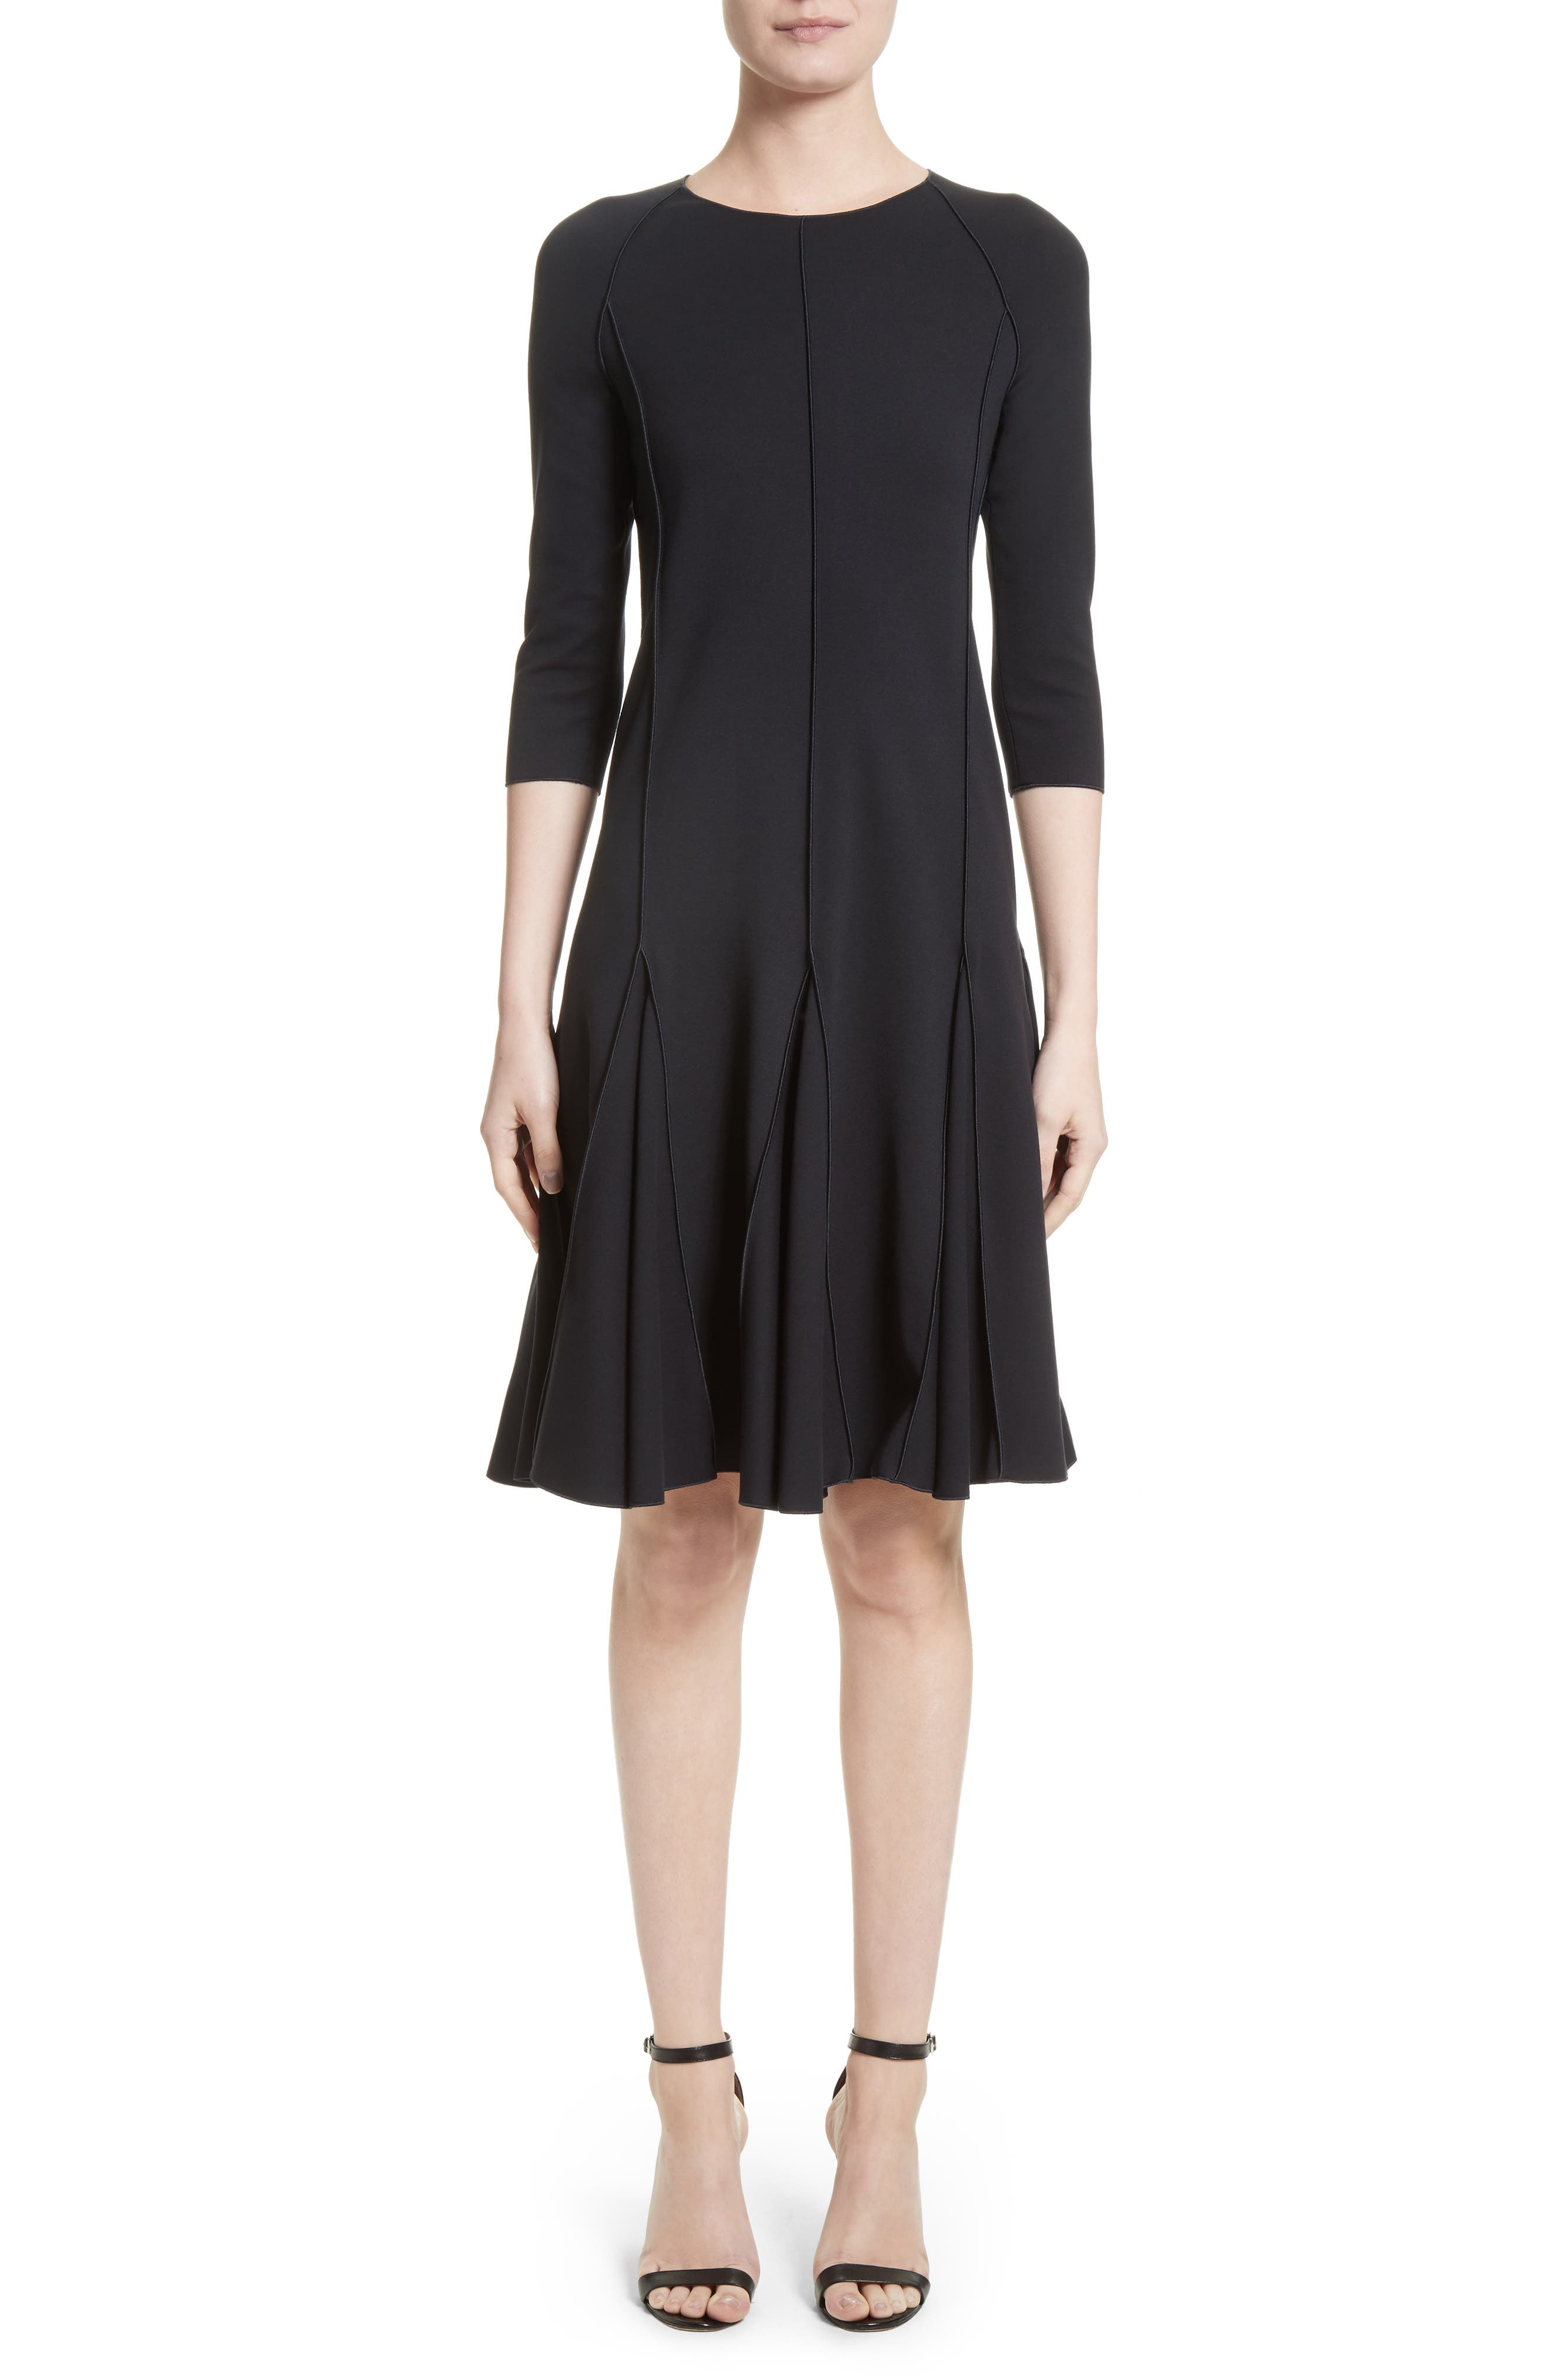 Alternate Image 1 Selected - Armani Collezioni Seamed Jersey Fit & Flare Dress